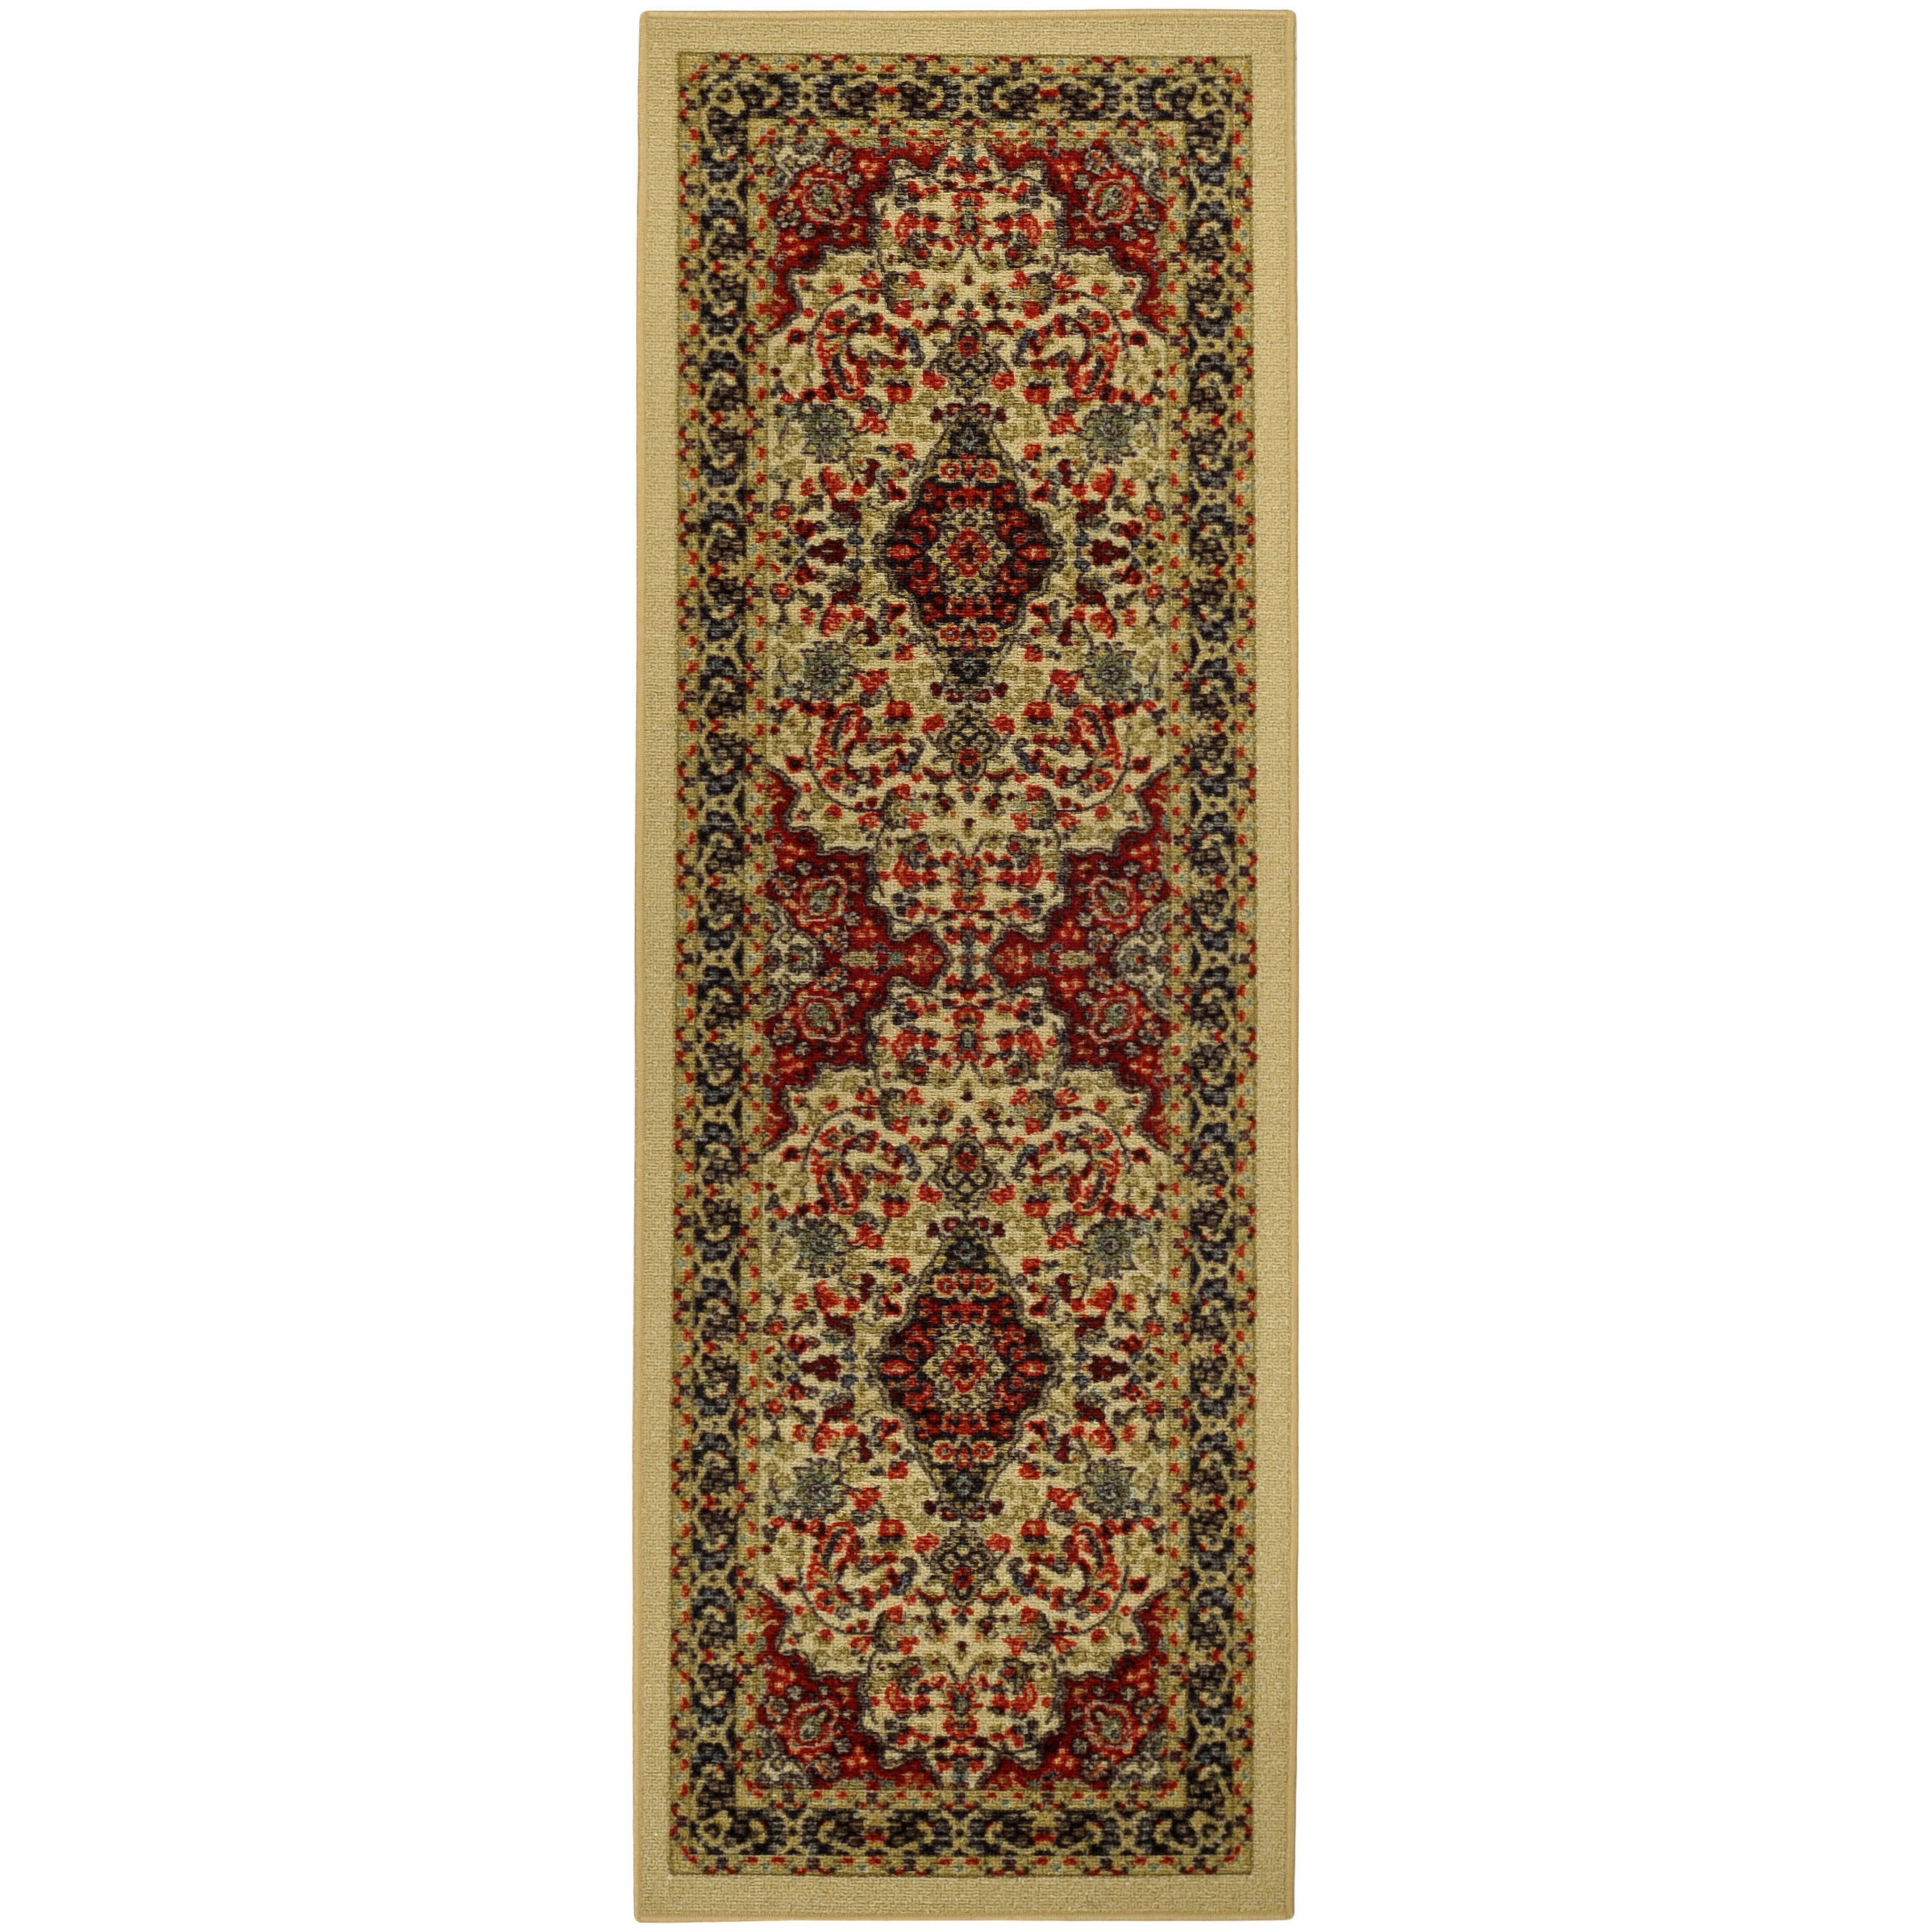 "Rubber Back Ivory Traditional Floral Print Non-Skid Runner Rug (22"" x 6'9) at Sears.com"